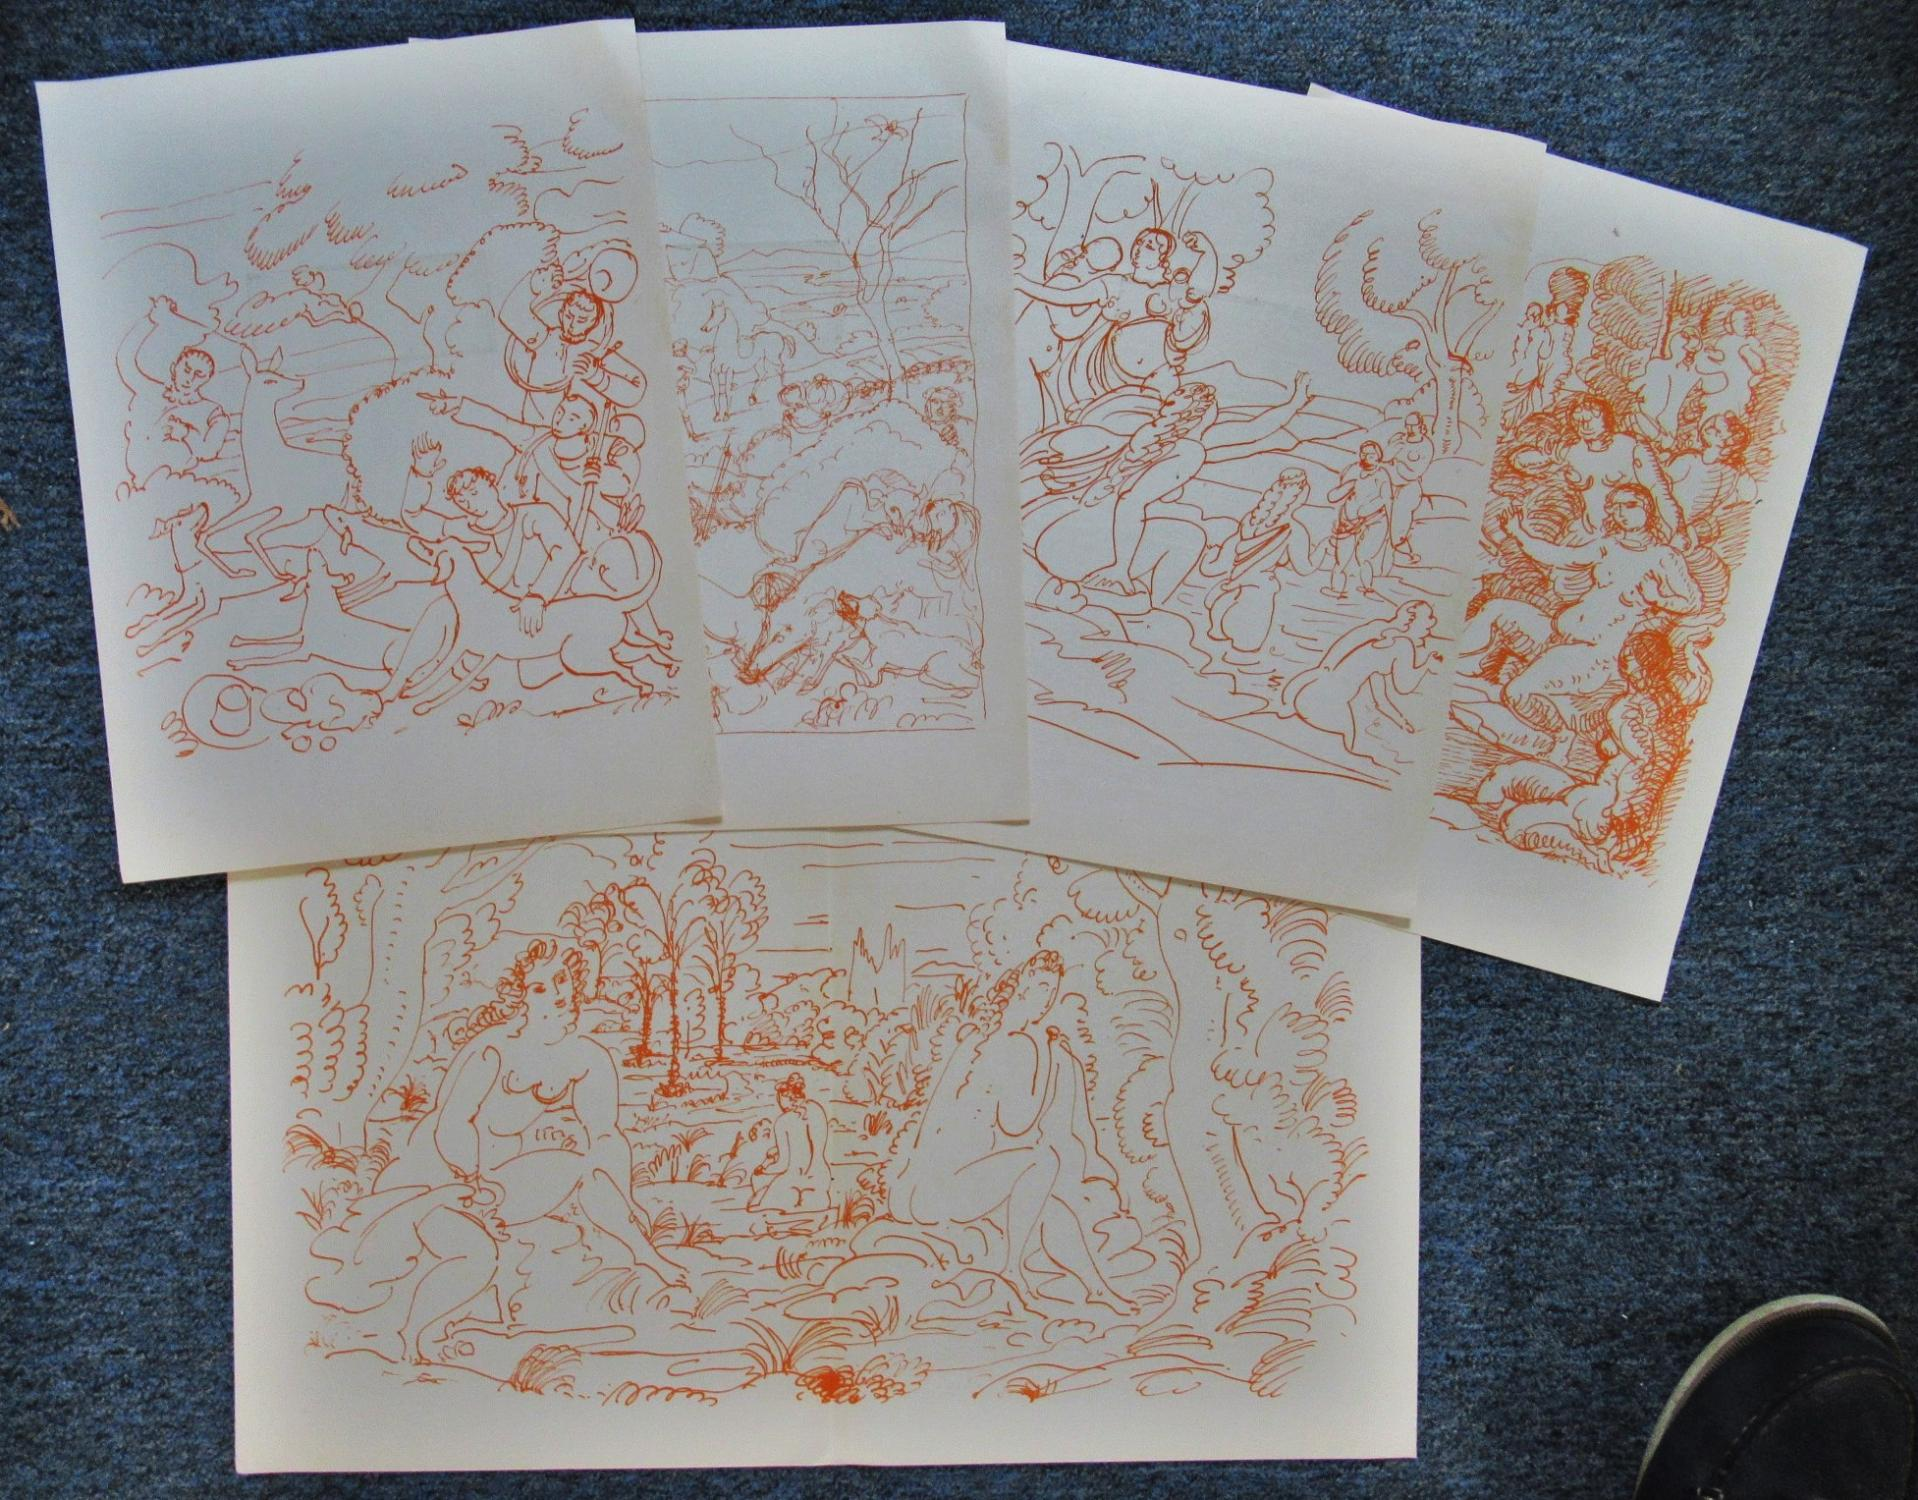 FIVE_ORIGINAL_LITHOGRAPHS_BY_ANDRE_DERAIN_ANDRE_DERAIN_Very_Good